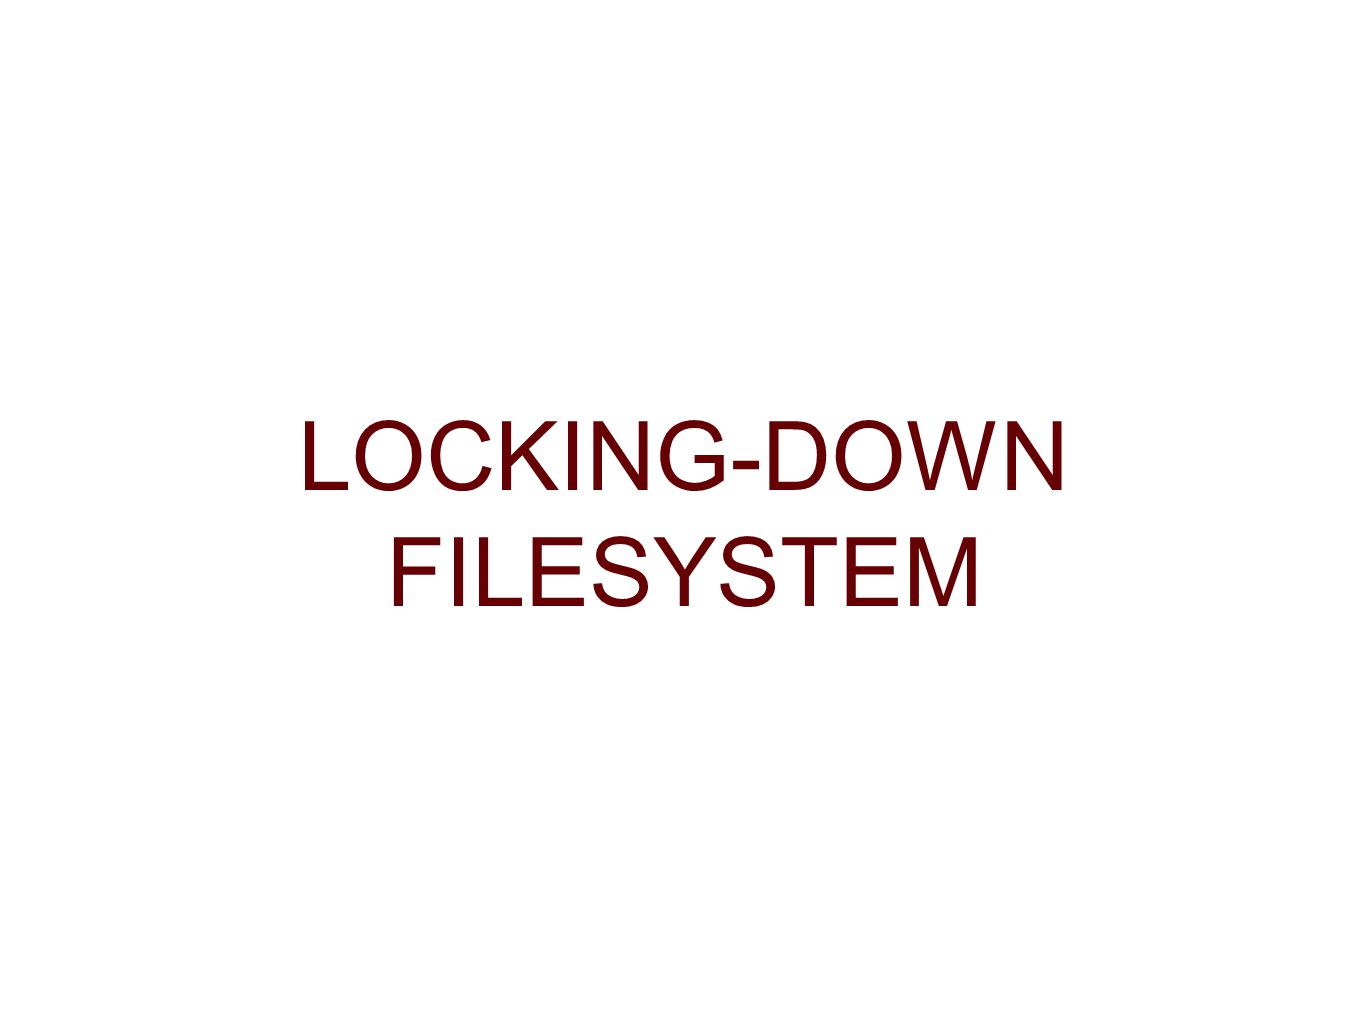 LOCKING-DOWN FILESYSTEM